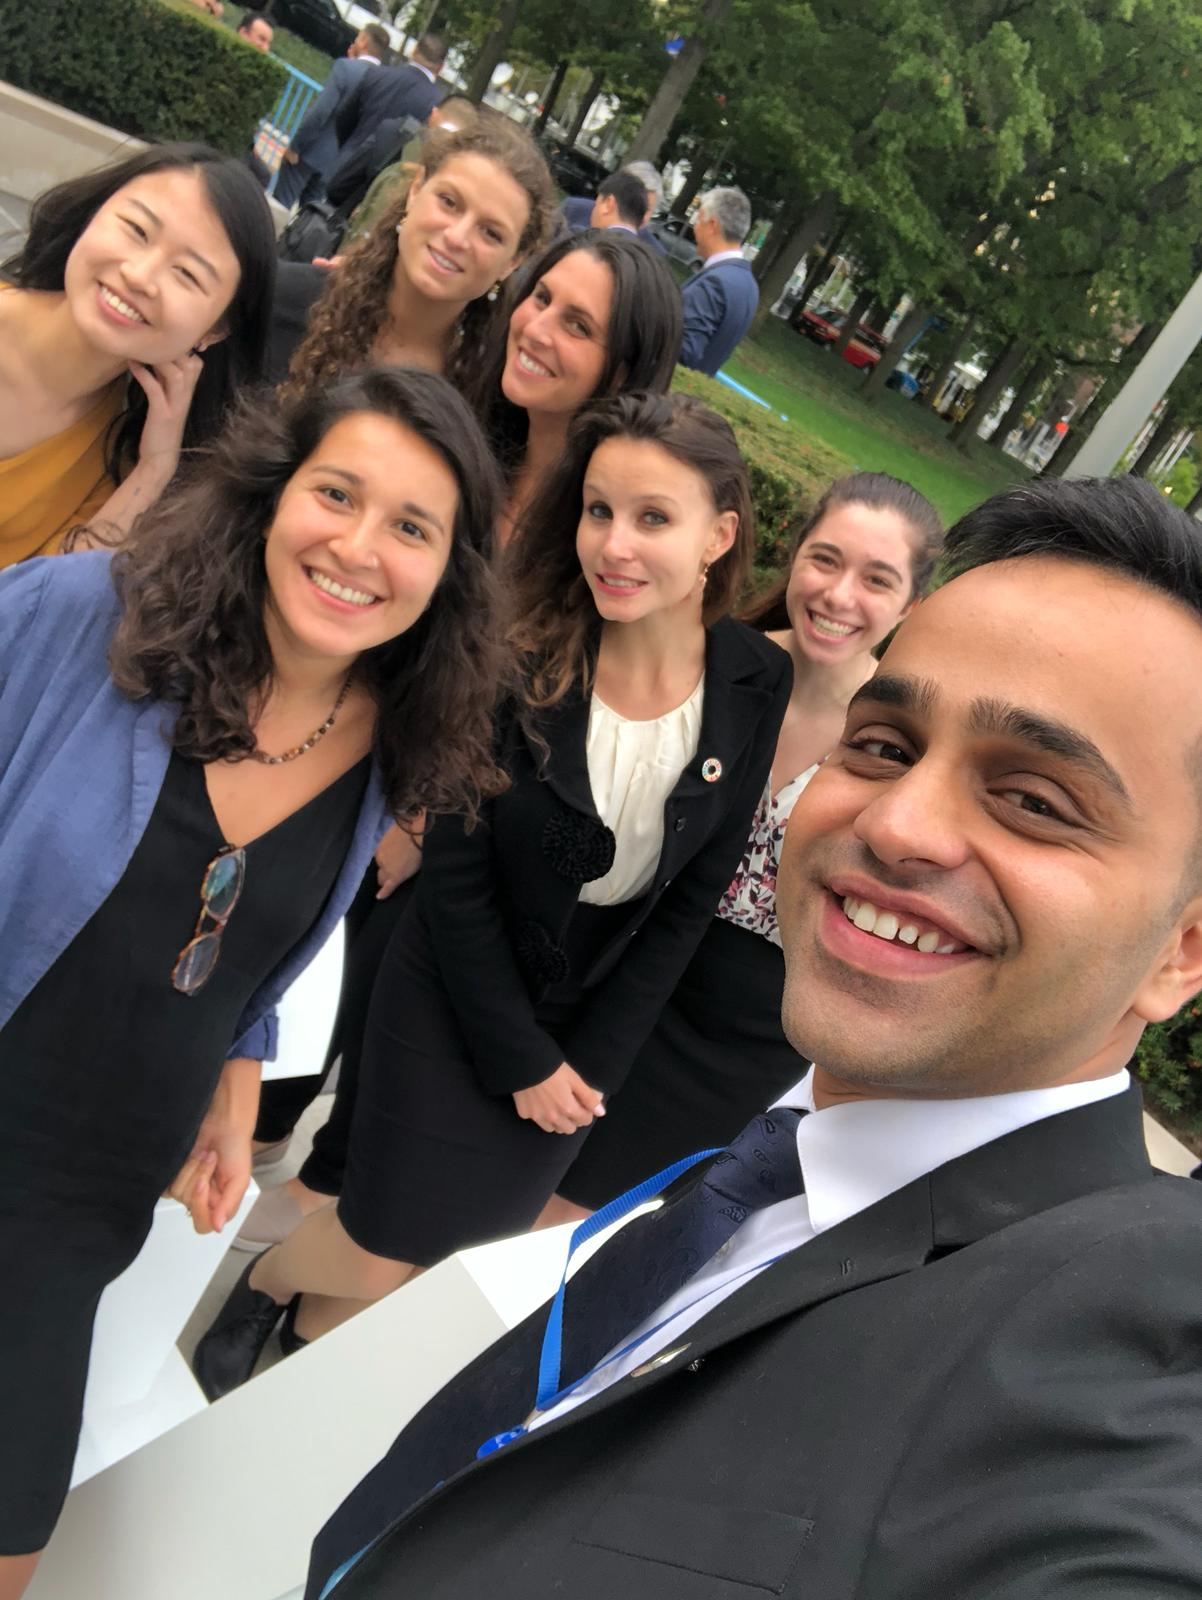 All smiles at UNGA73!